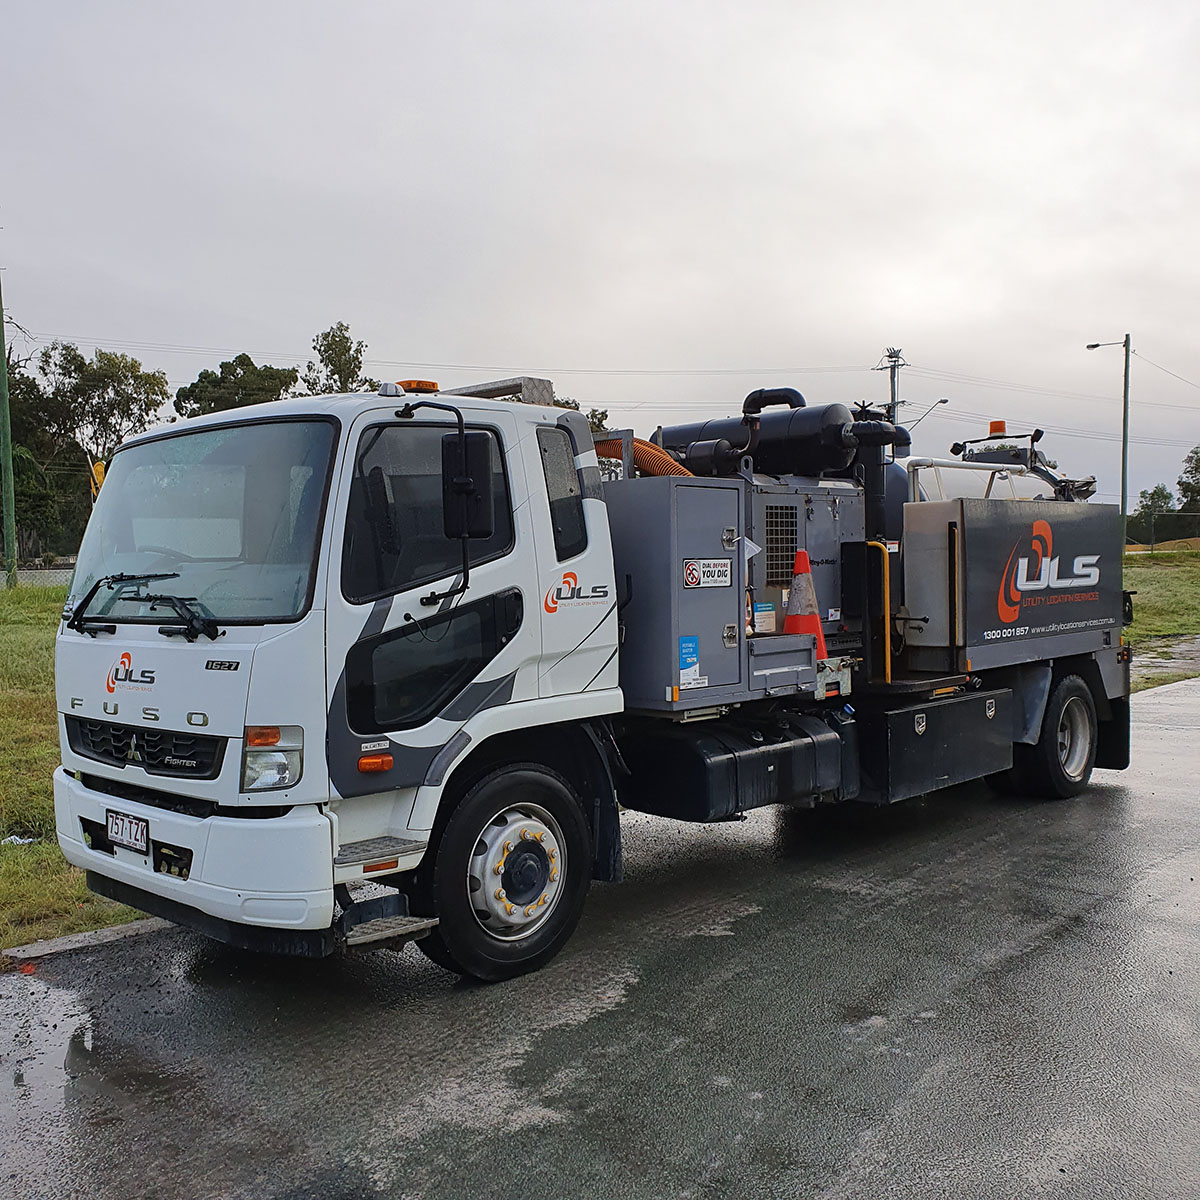 750 hi cfm 4000 litre vac truck for hire gold coast brisbane